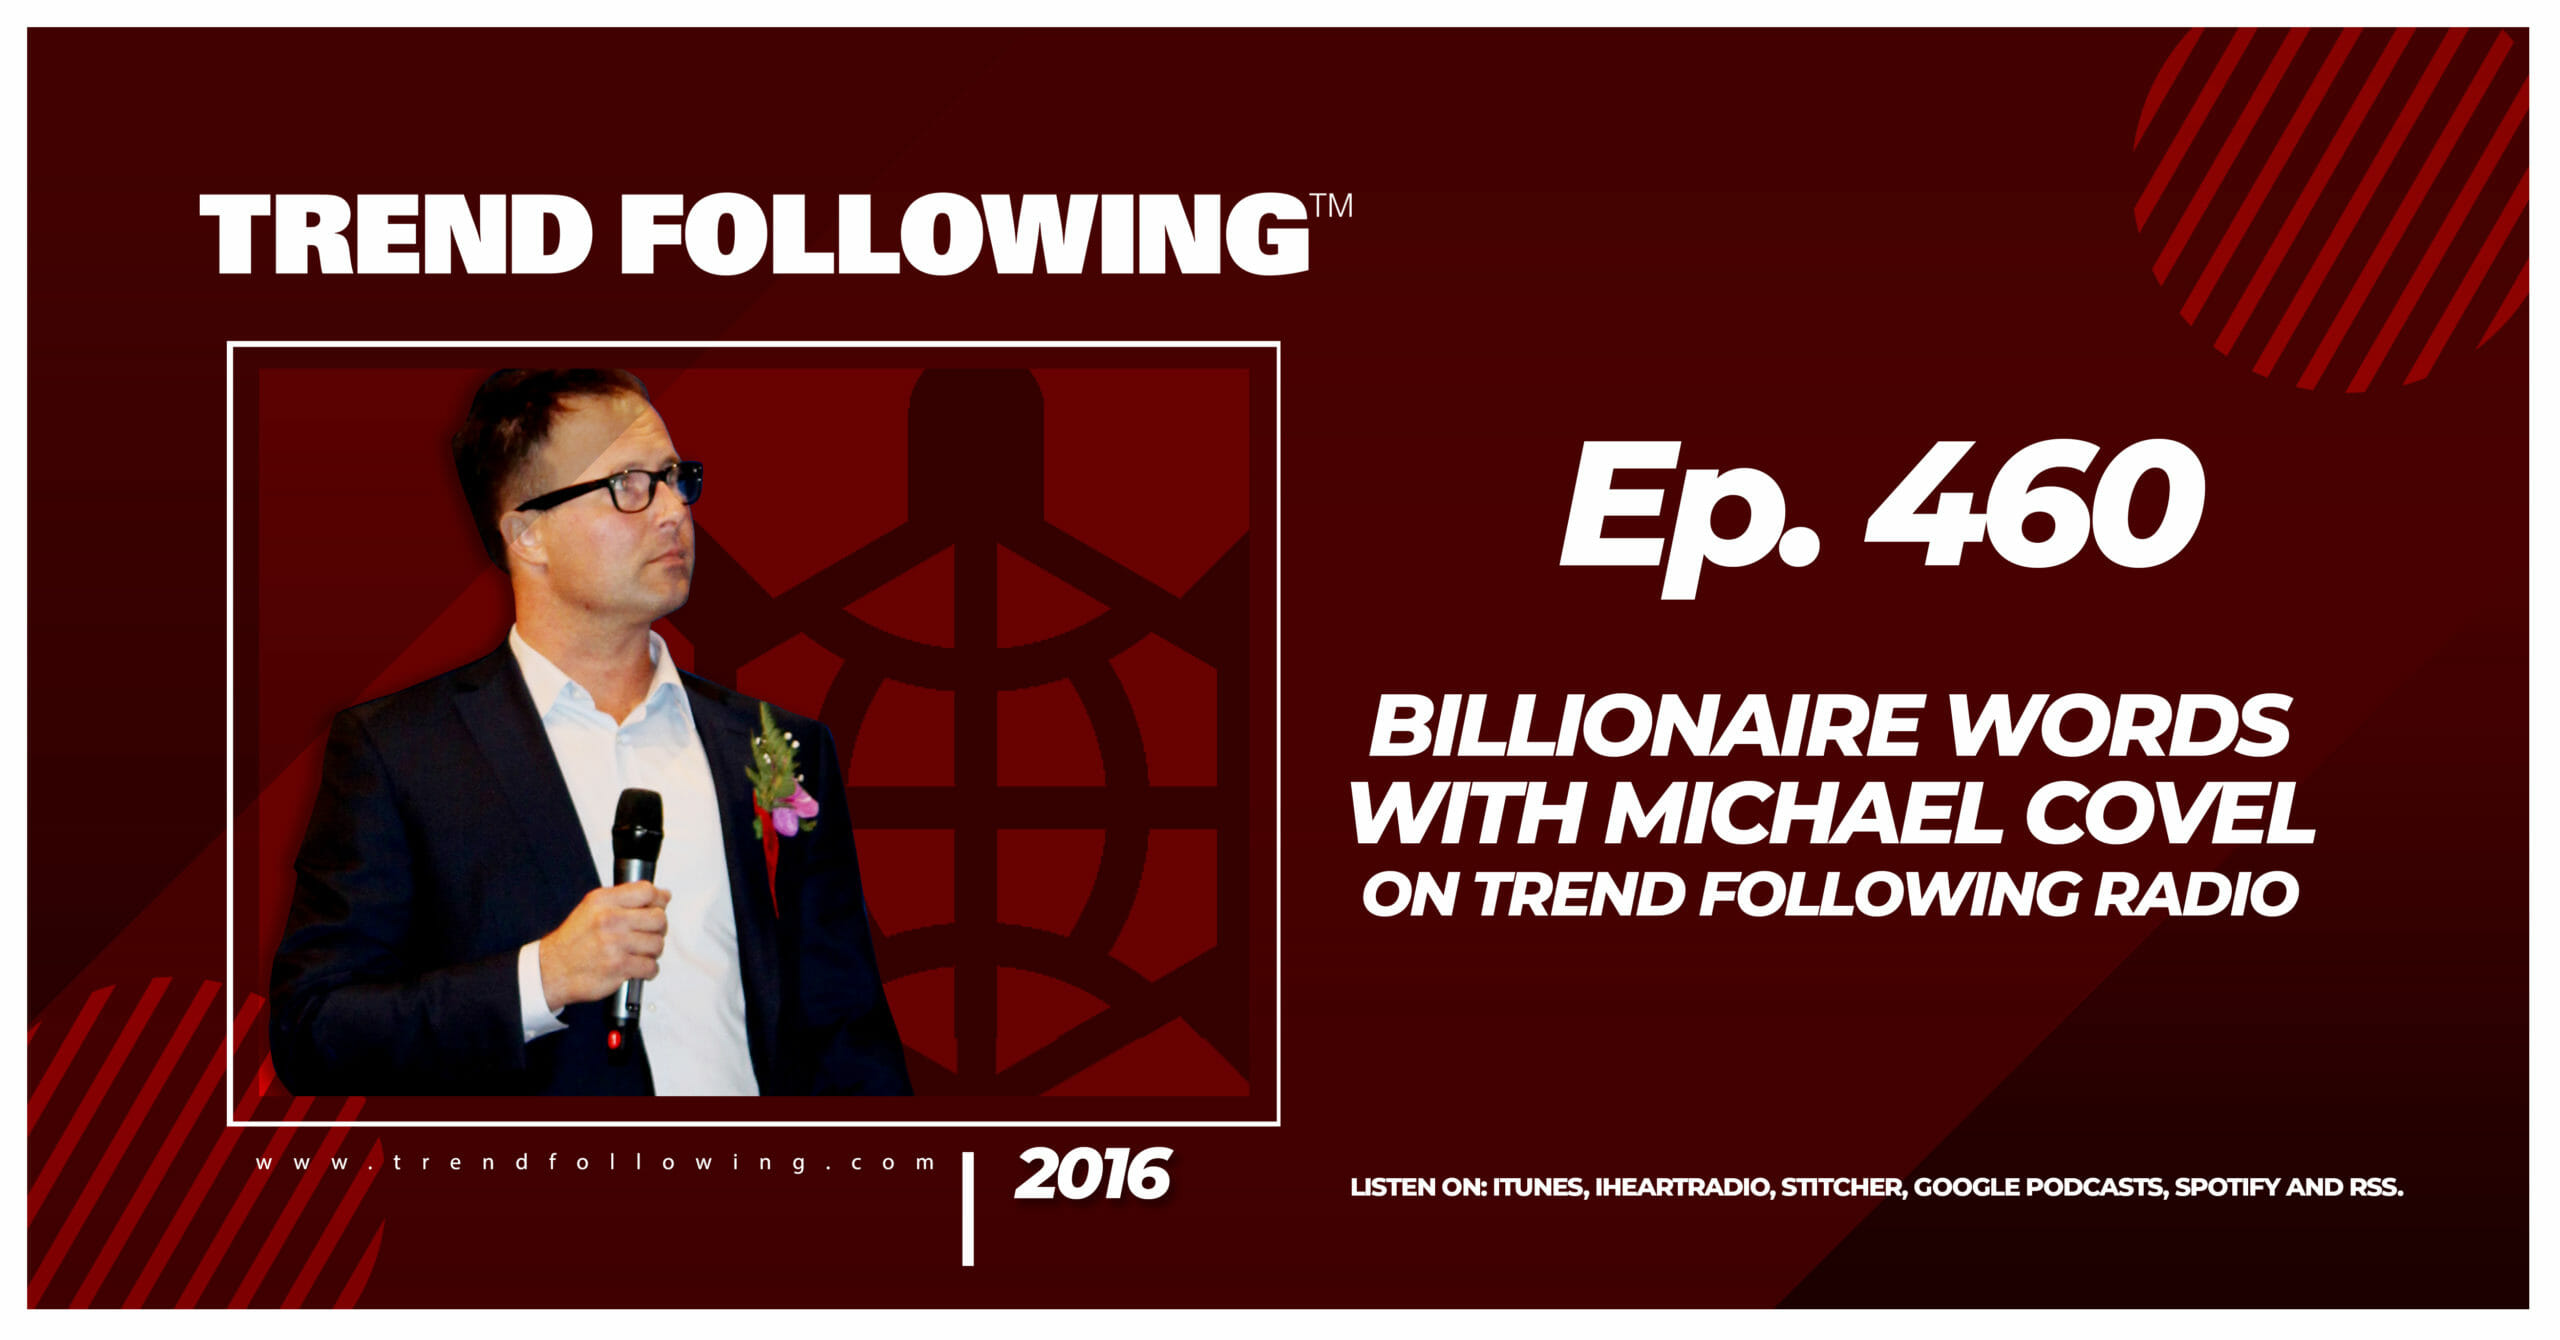 Billionaire Words with Michael Covel on Trend Following Radio